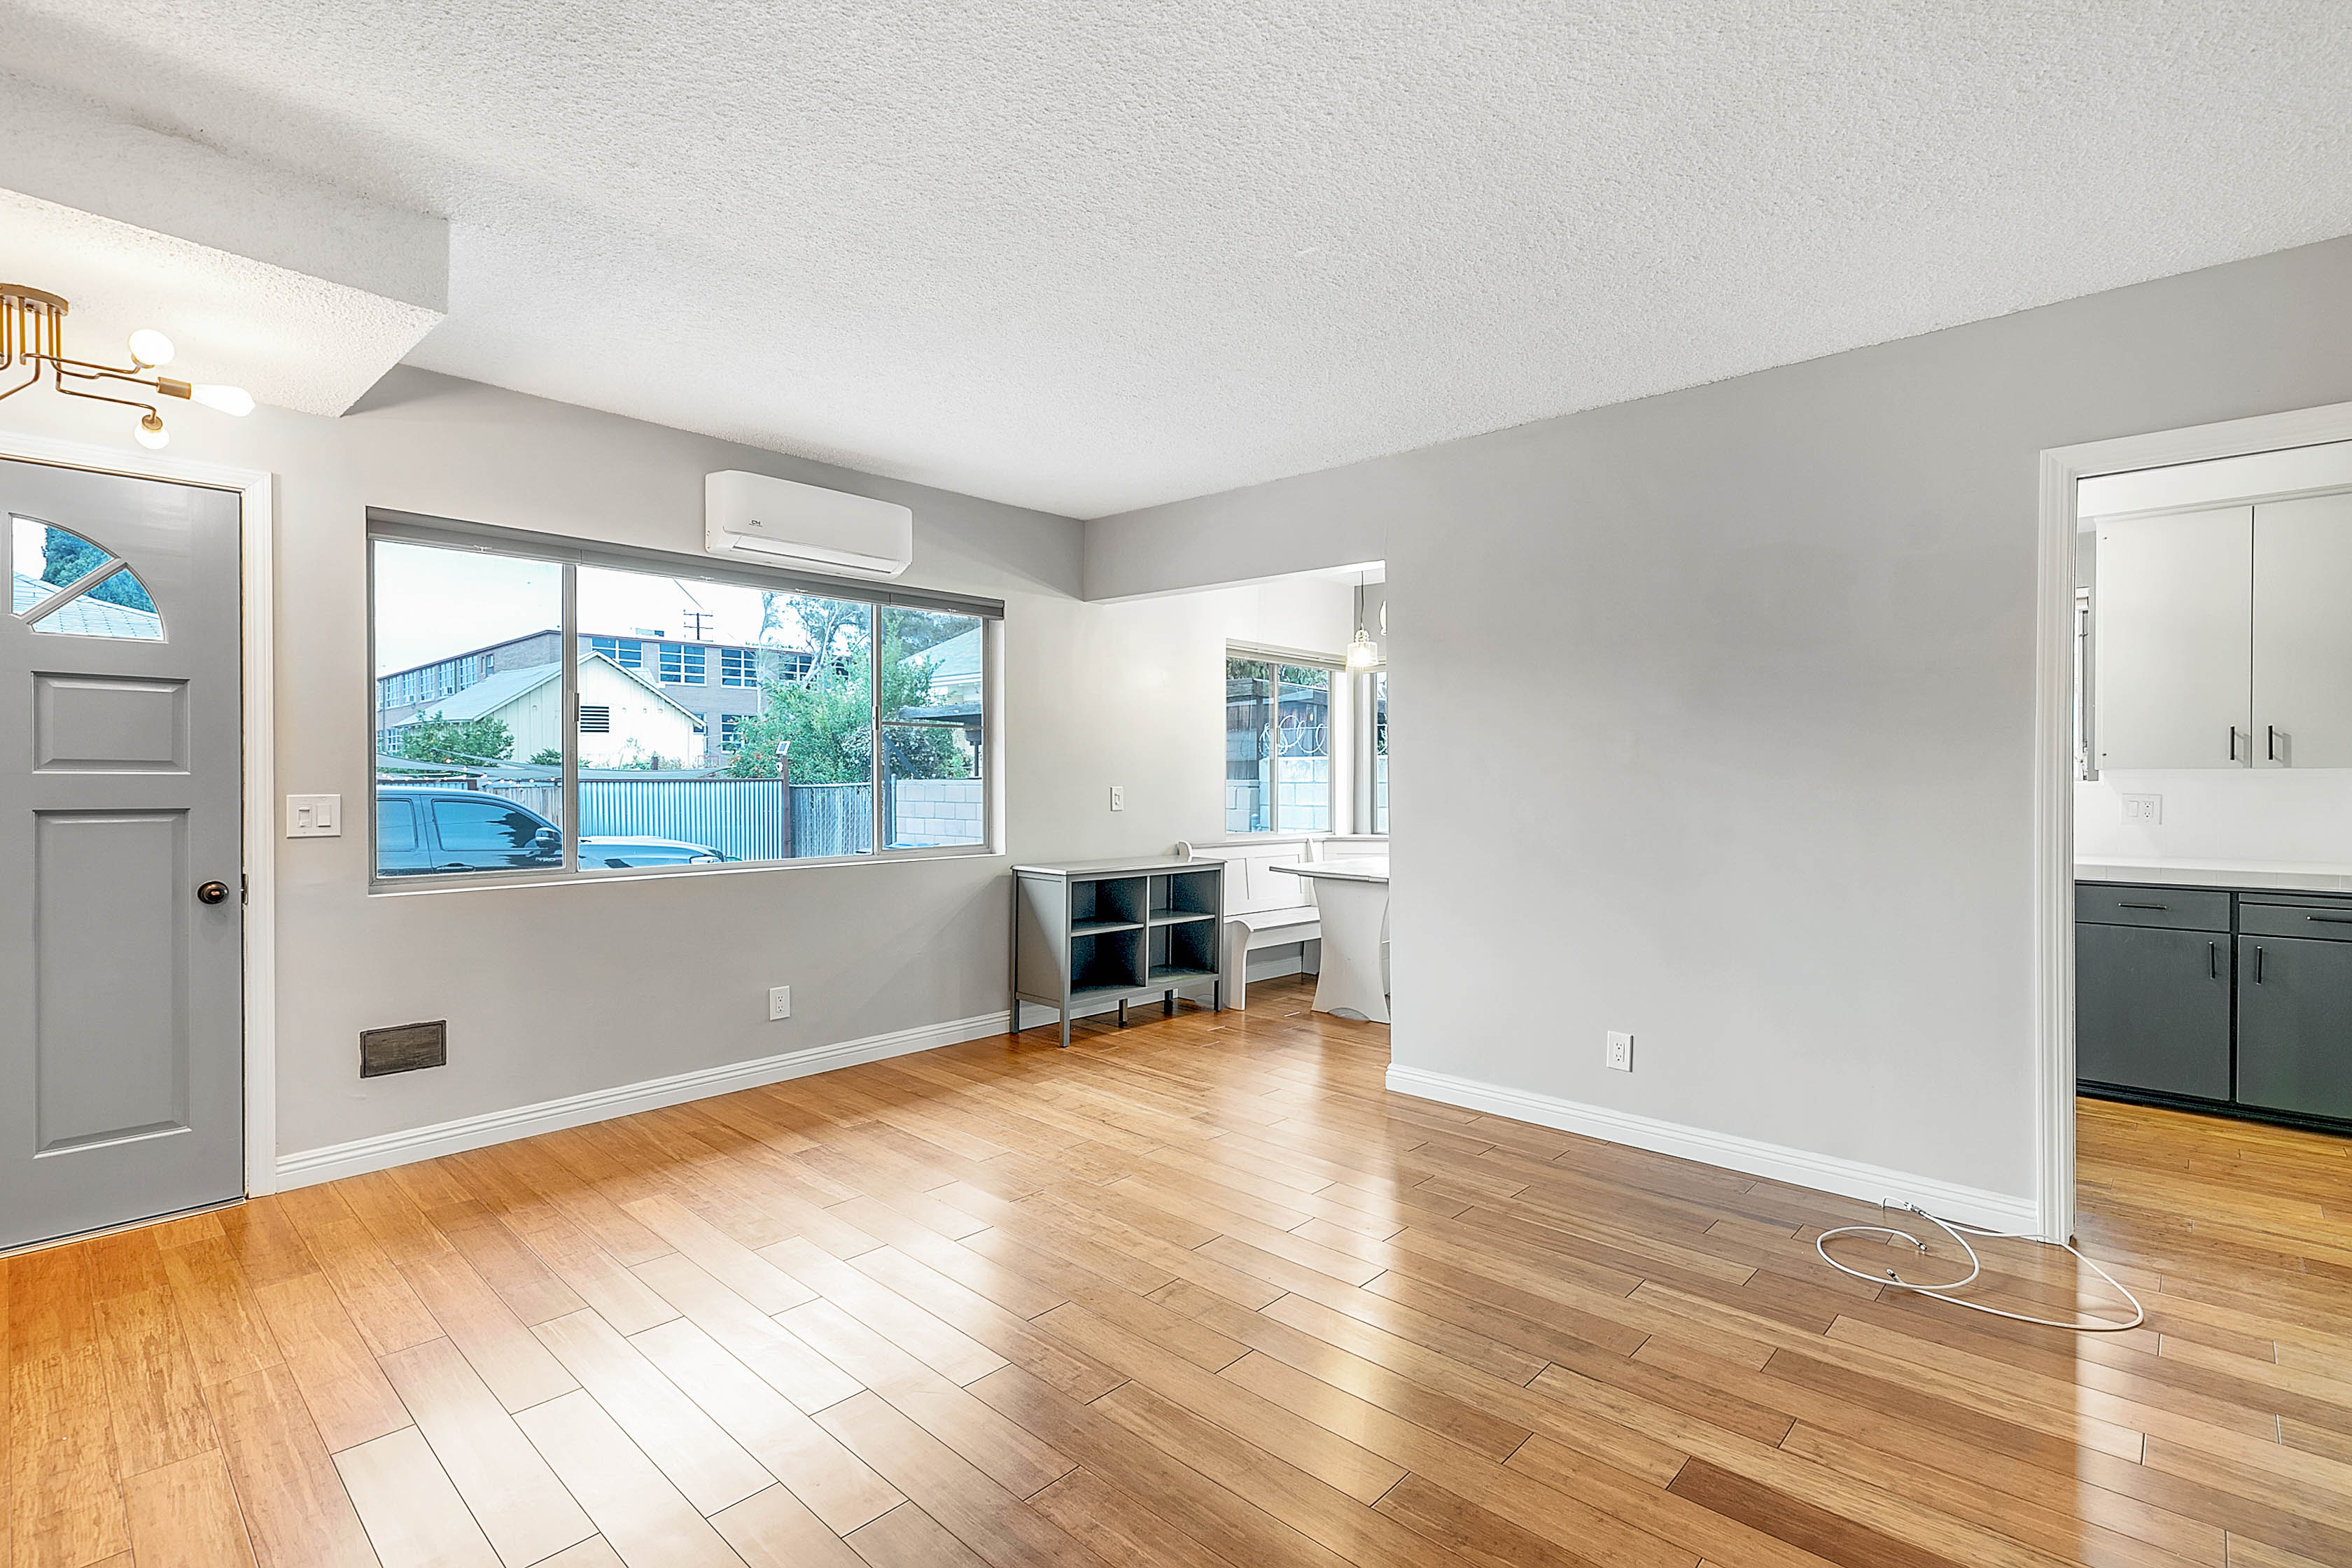 Freshly Updated Lincoln Heights Duplex | Renovated & Features New Combo W/D & Ductless AC | Spacious Shared Patio | 1 Parking Space Included!